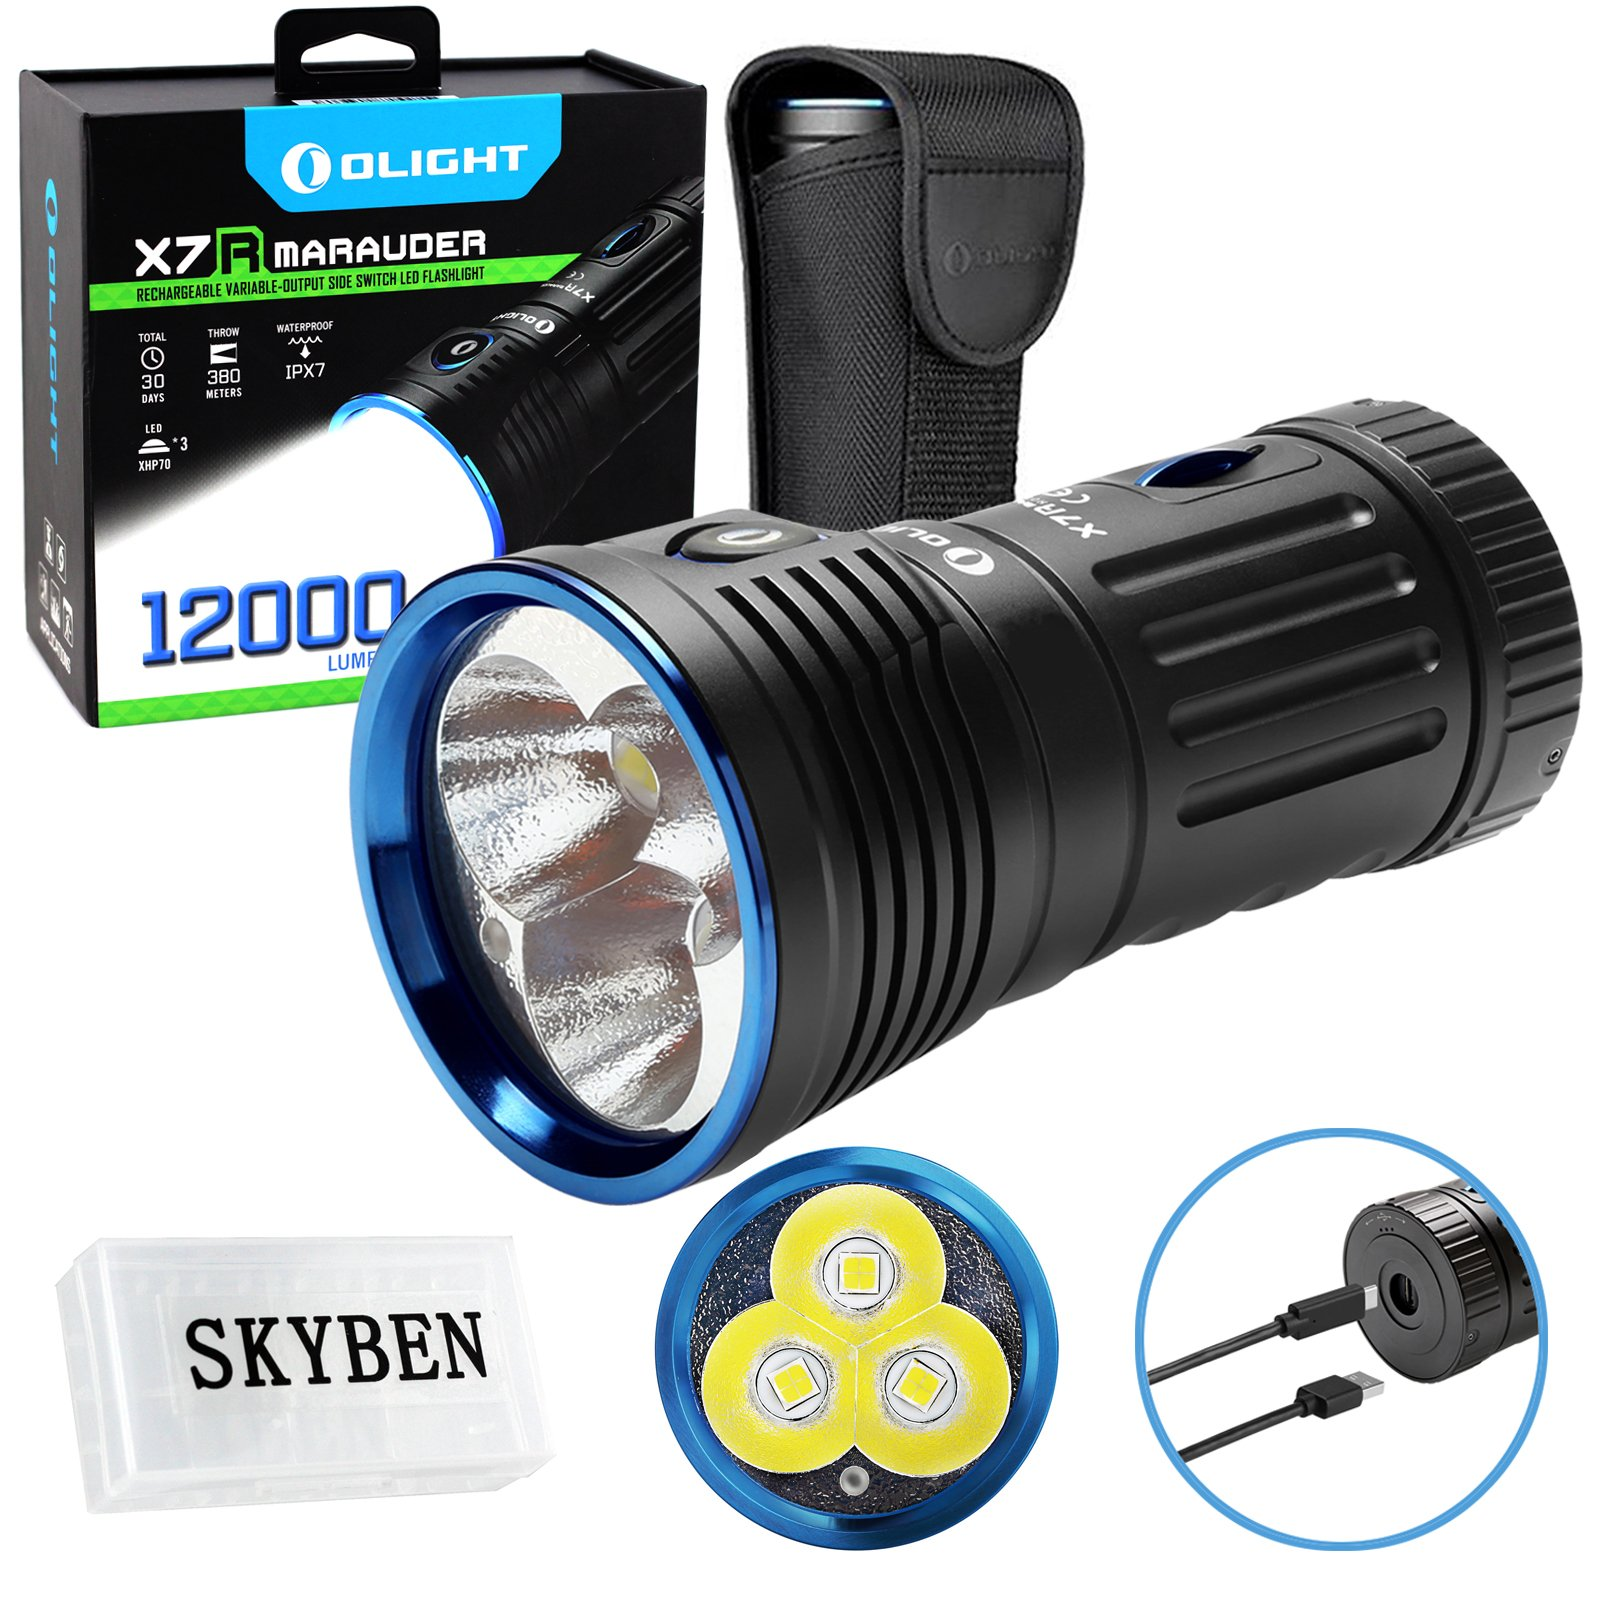 Olight X7R Marauder 12000 Lumens CREE XHP 70 LED USB Rechargeable Flashlight for Camping,Hunting,Searching,with 4 X 18650 Rechargeable Batteries (Built-in) and SKYBEN Accessory